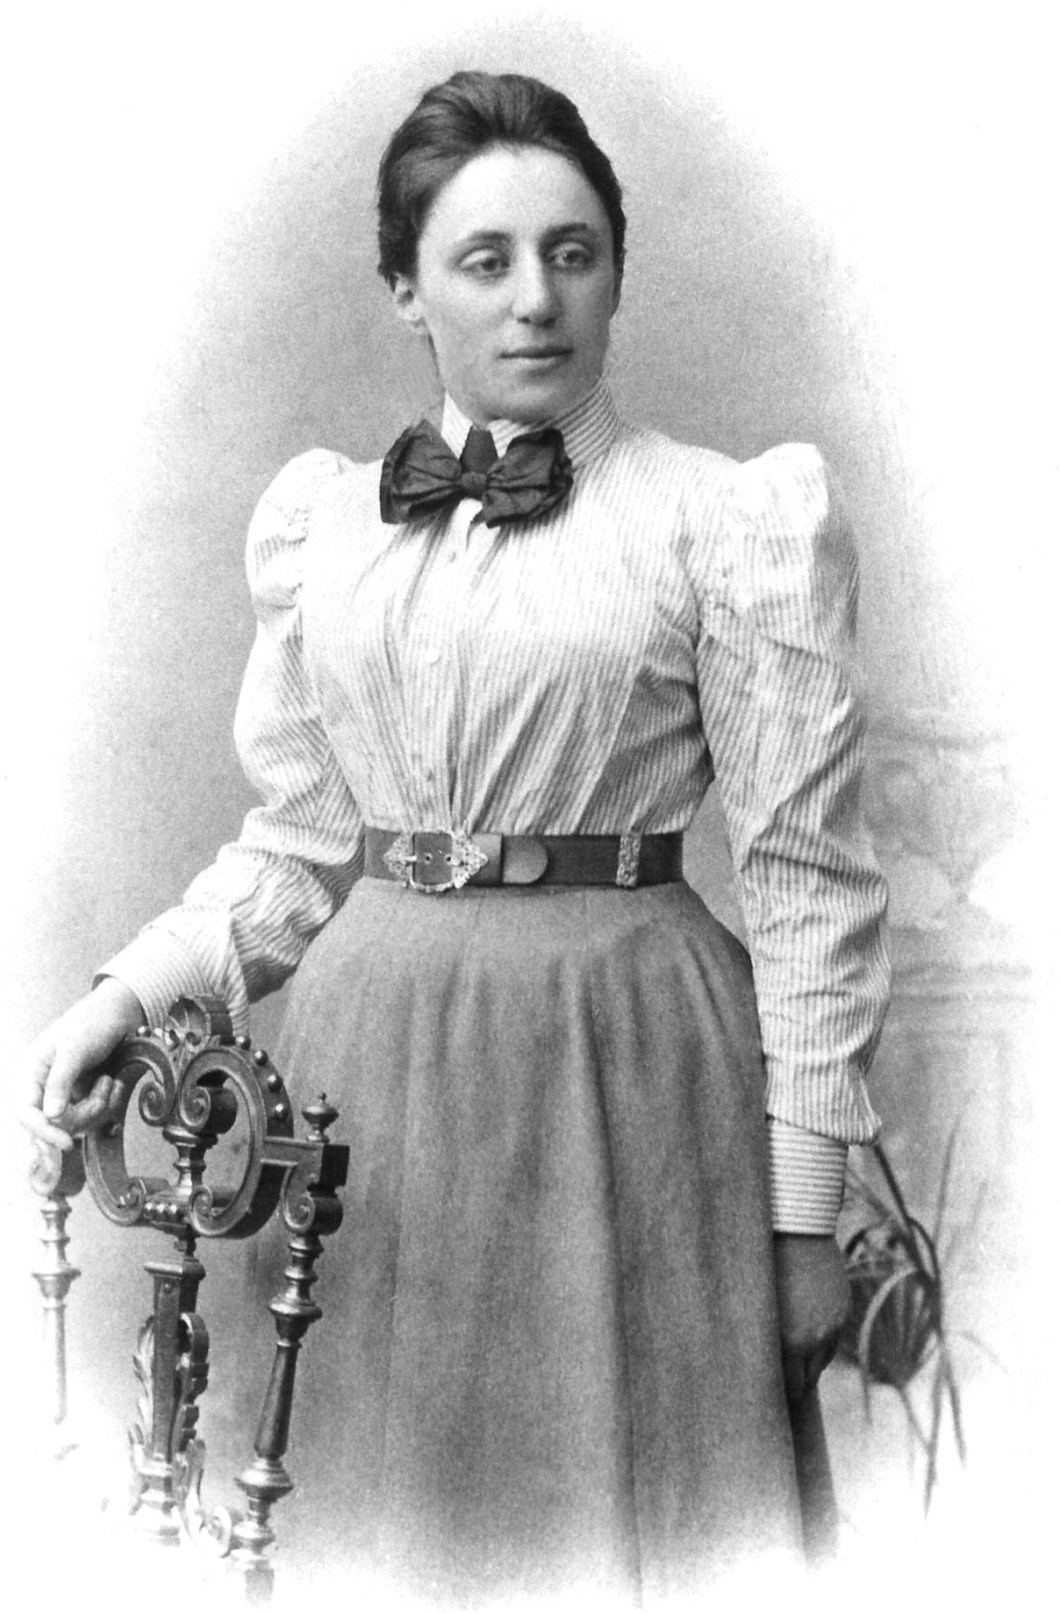 A black and white portrait of a young Emmy Noether in a shirt and a skirt.